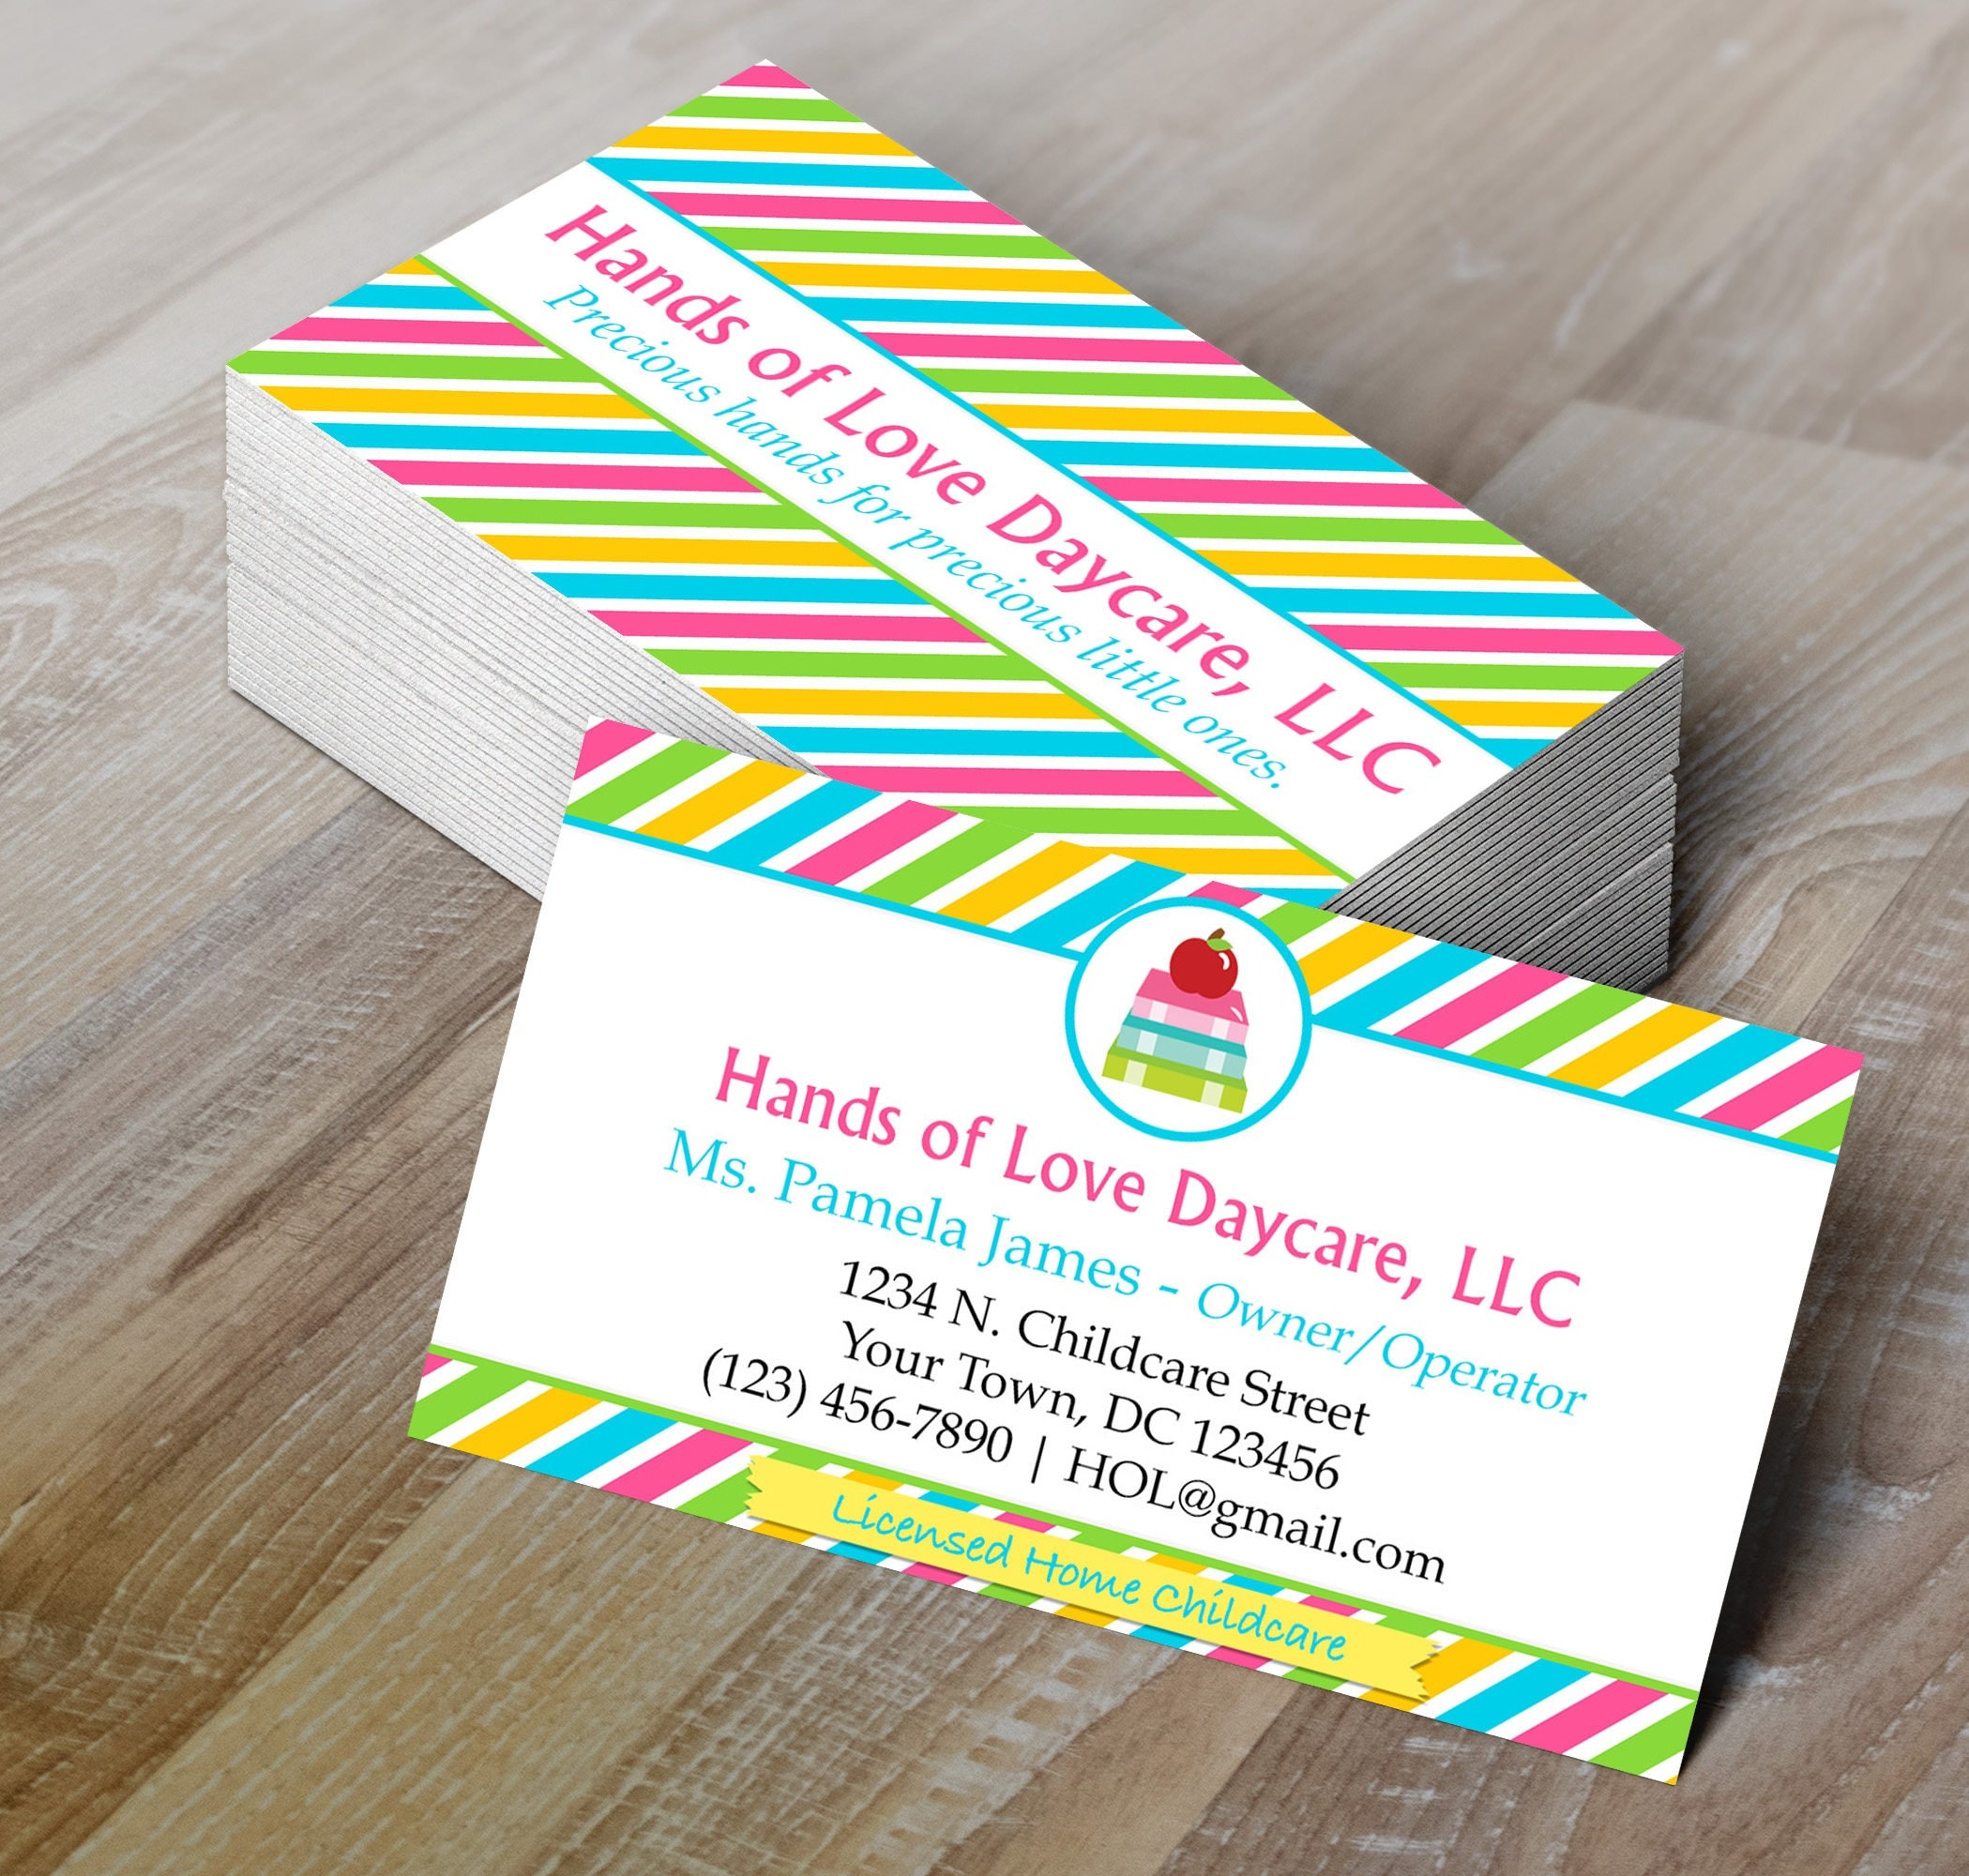 Childcare business card daycare business card editable zoom magicingreecefo Image collections